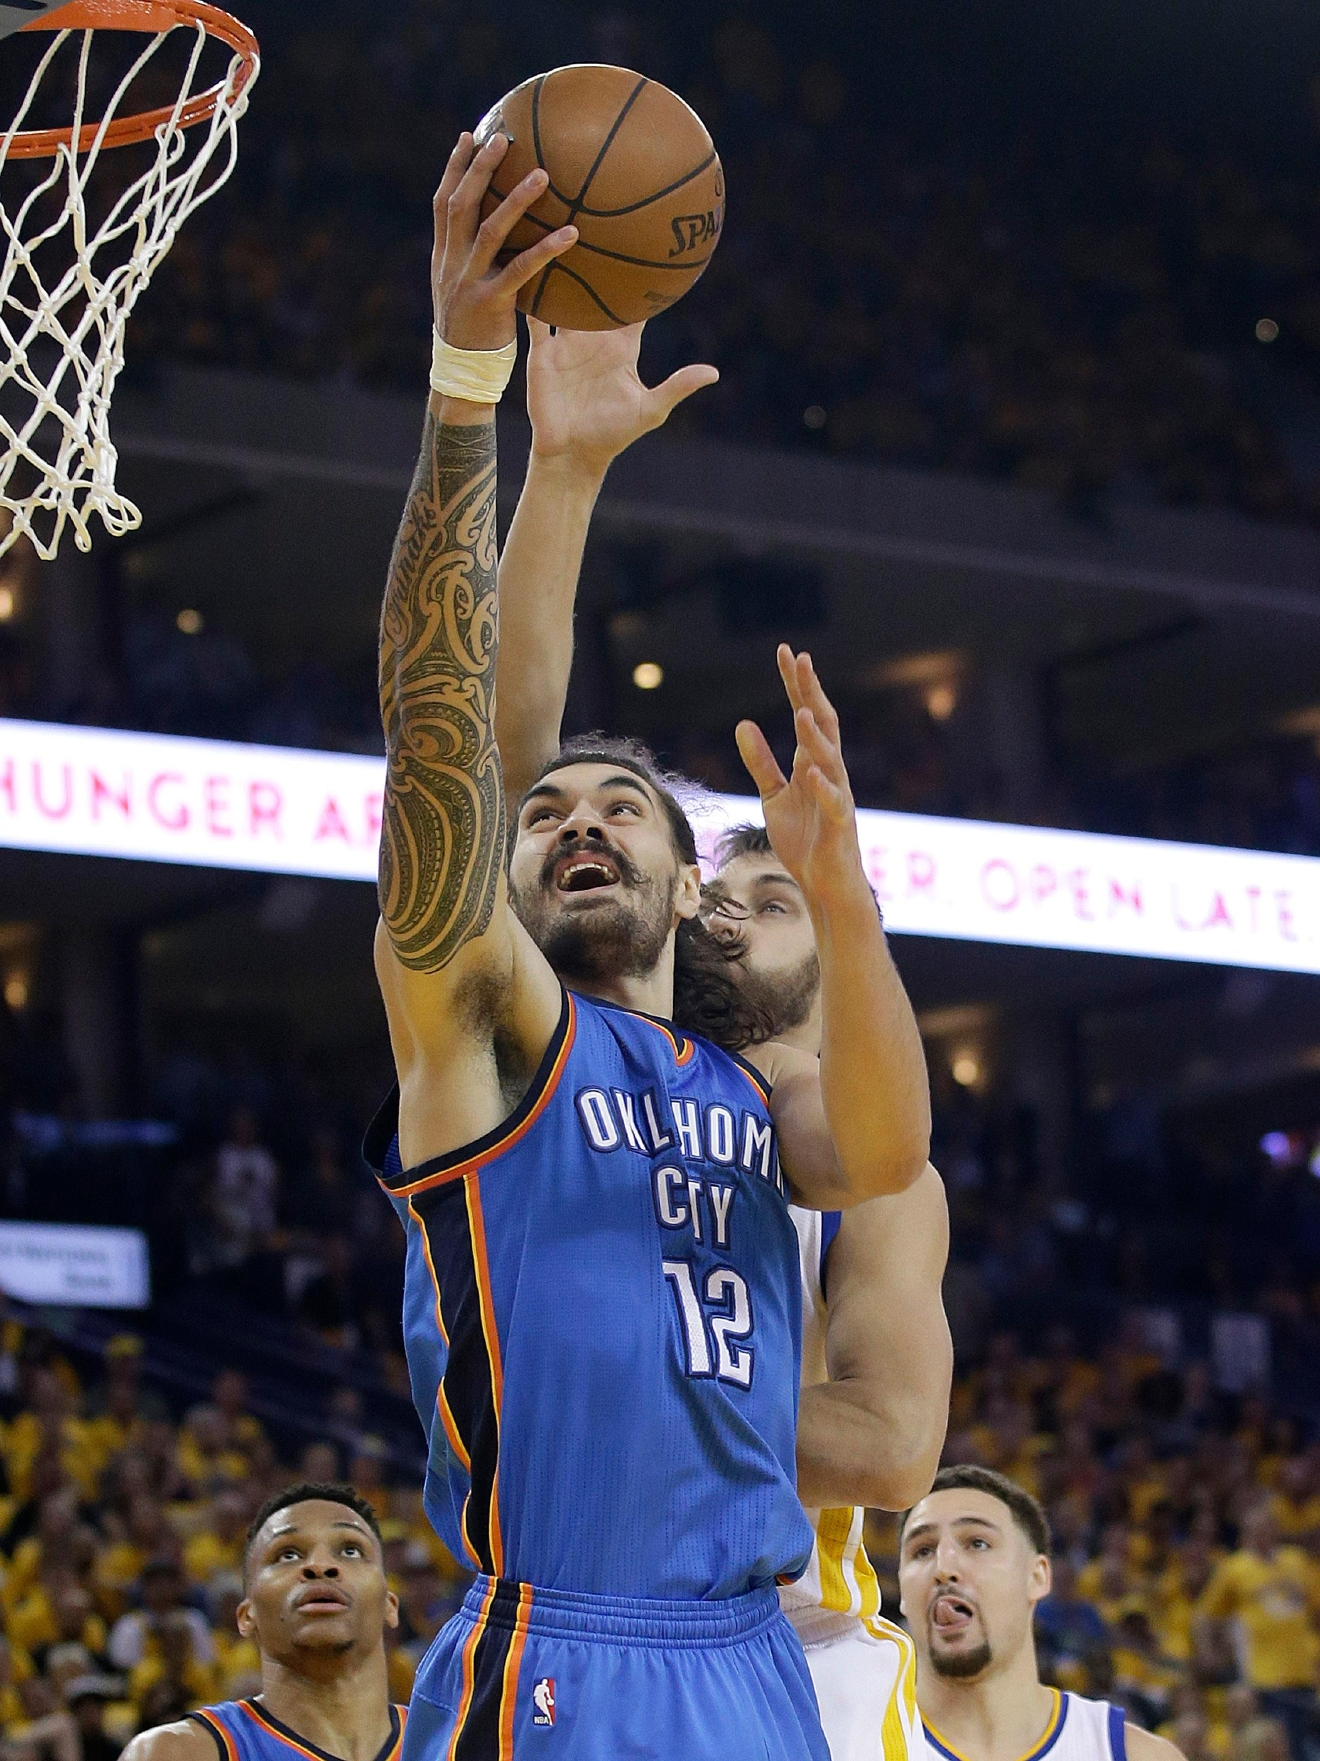 Oklahoma City Thunder center Steven Adams (12) shoots in front of Golden State Warriors center Andrew Bogut during the first half of Game 5 of the NBA basketball Western Conference finals in Oakland, Calif., Thursday, May 26, 2016. (AP Photo/Marcio Jose Sanchez)